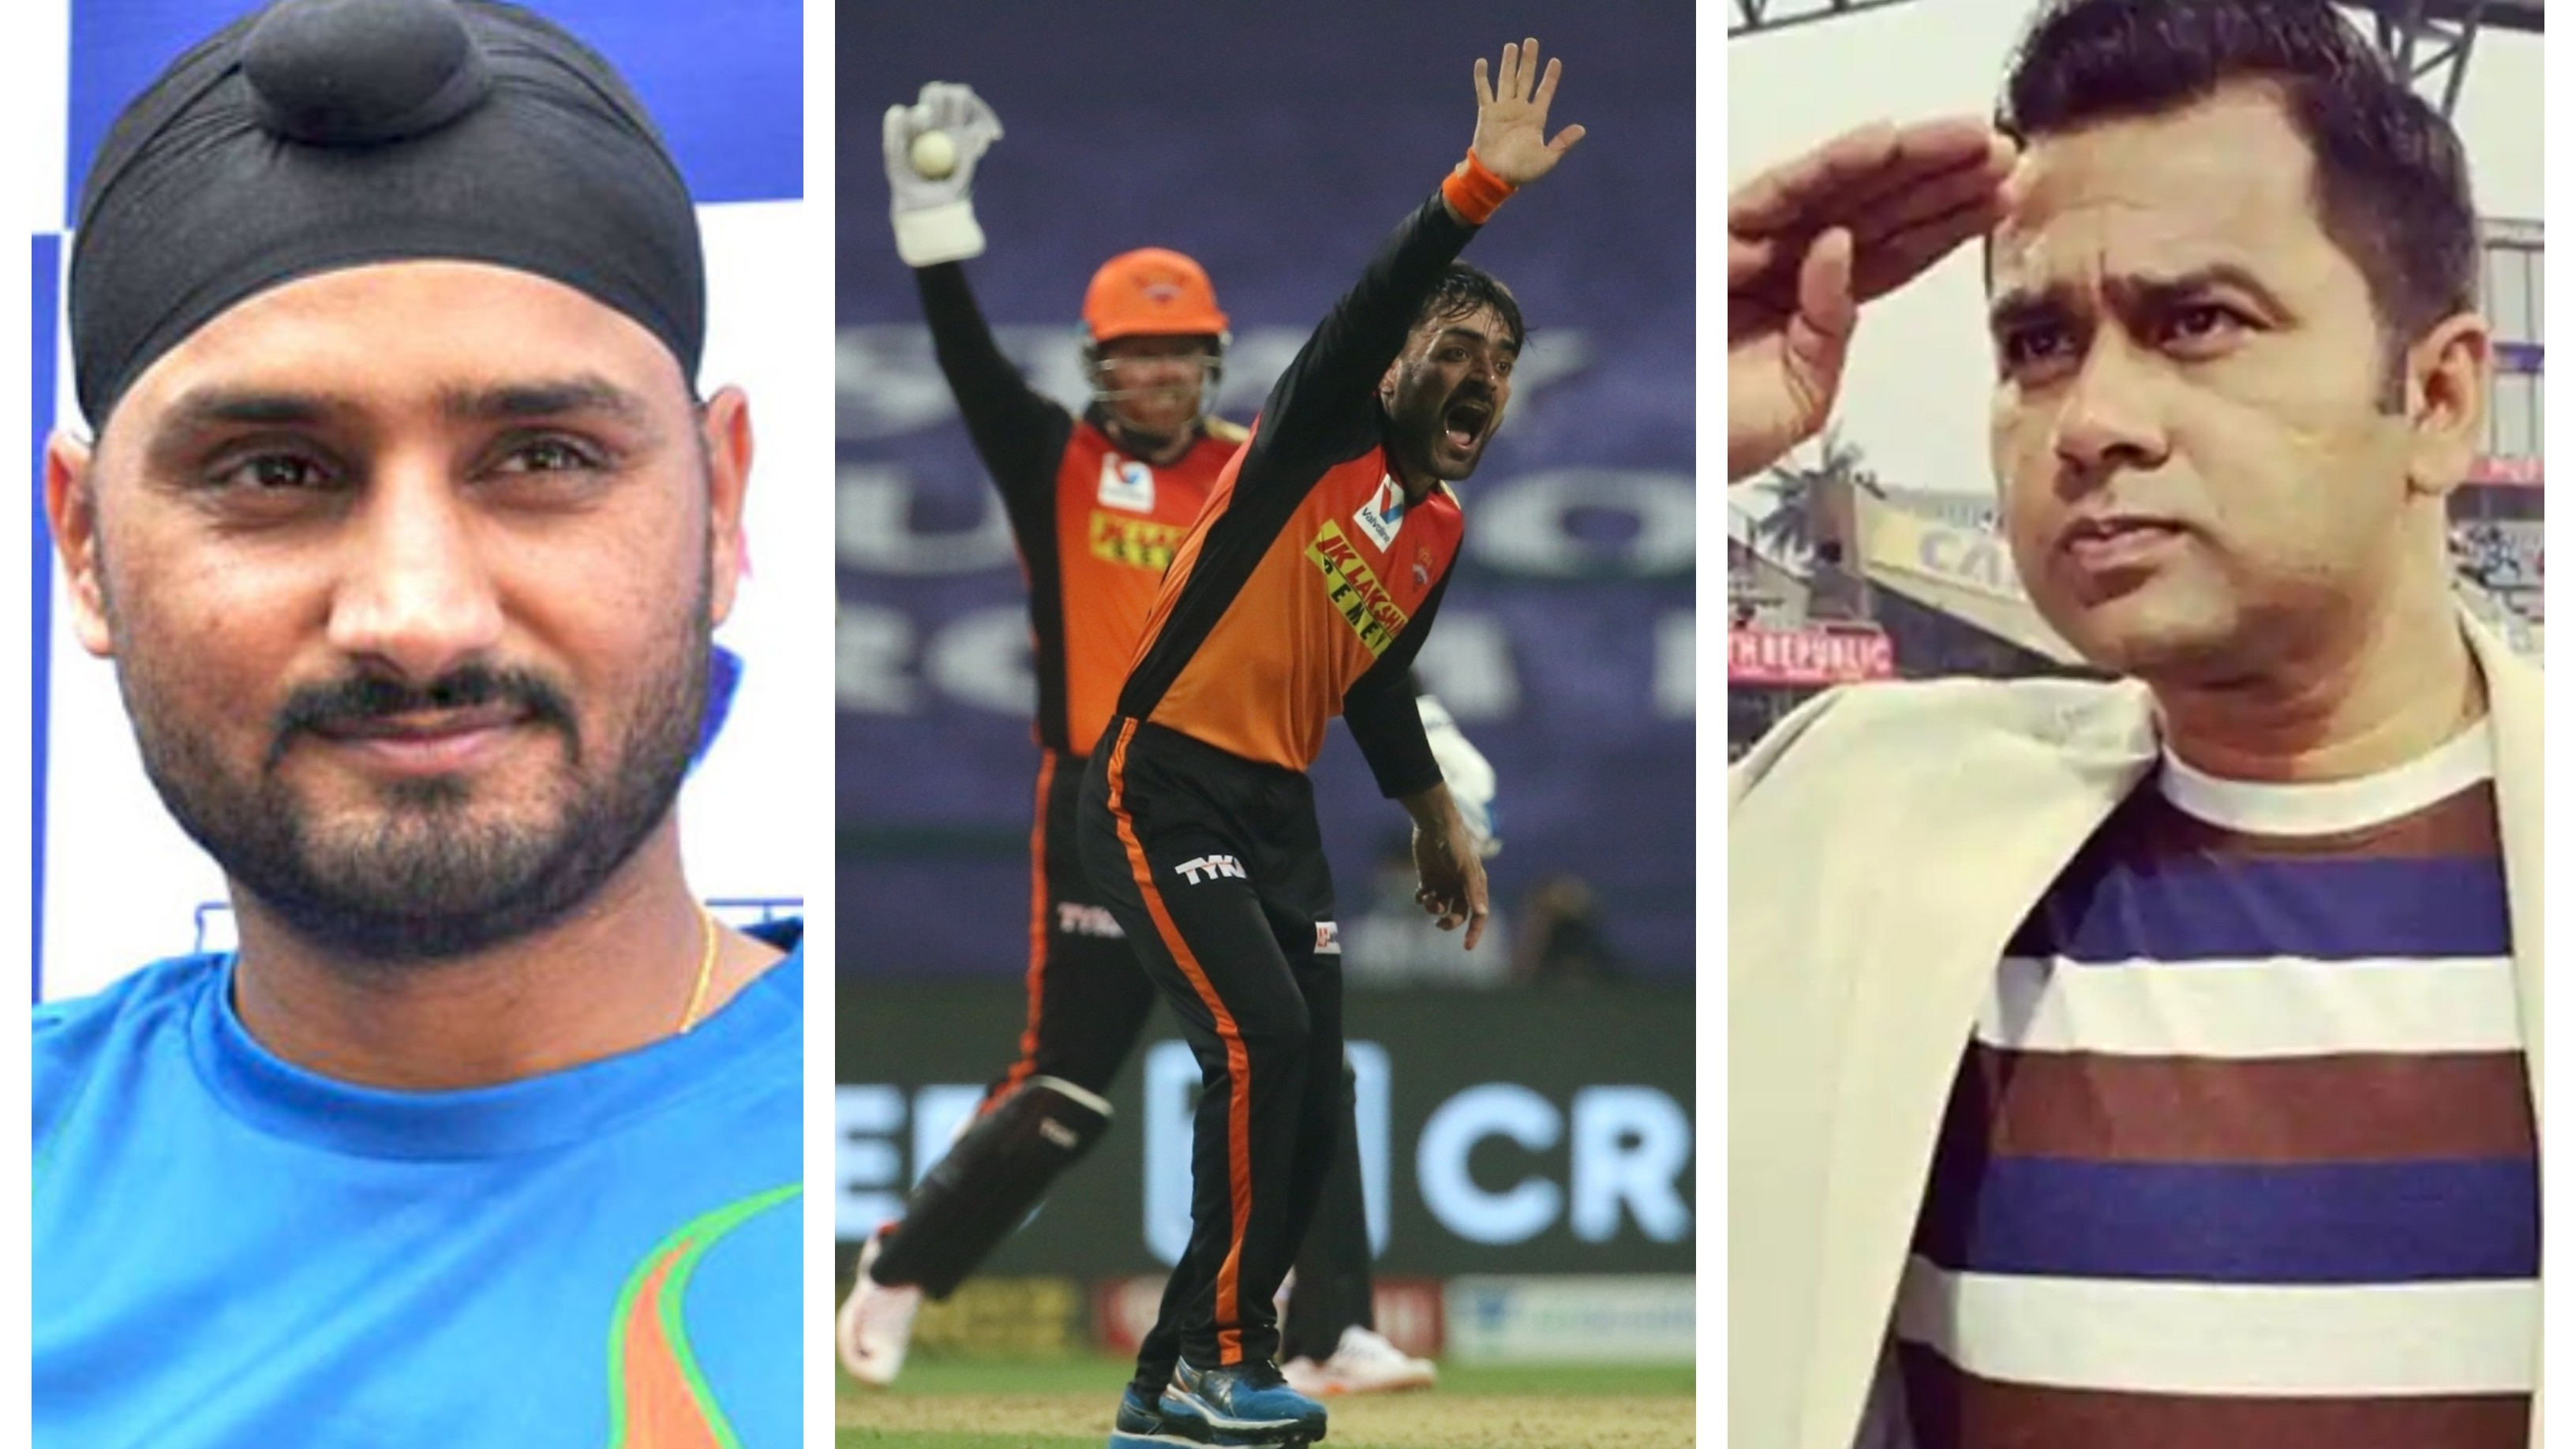 IPL 2020: Cricket fraternity reacts as Rashid Khan-led SRH attack bowls out KXIP for 132 after posting 201